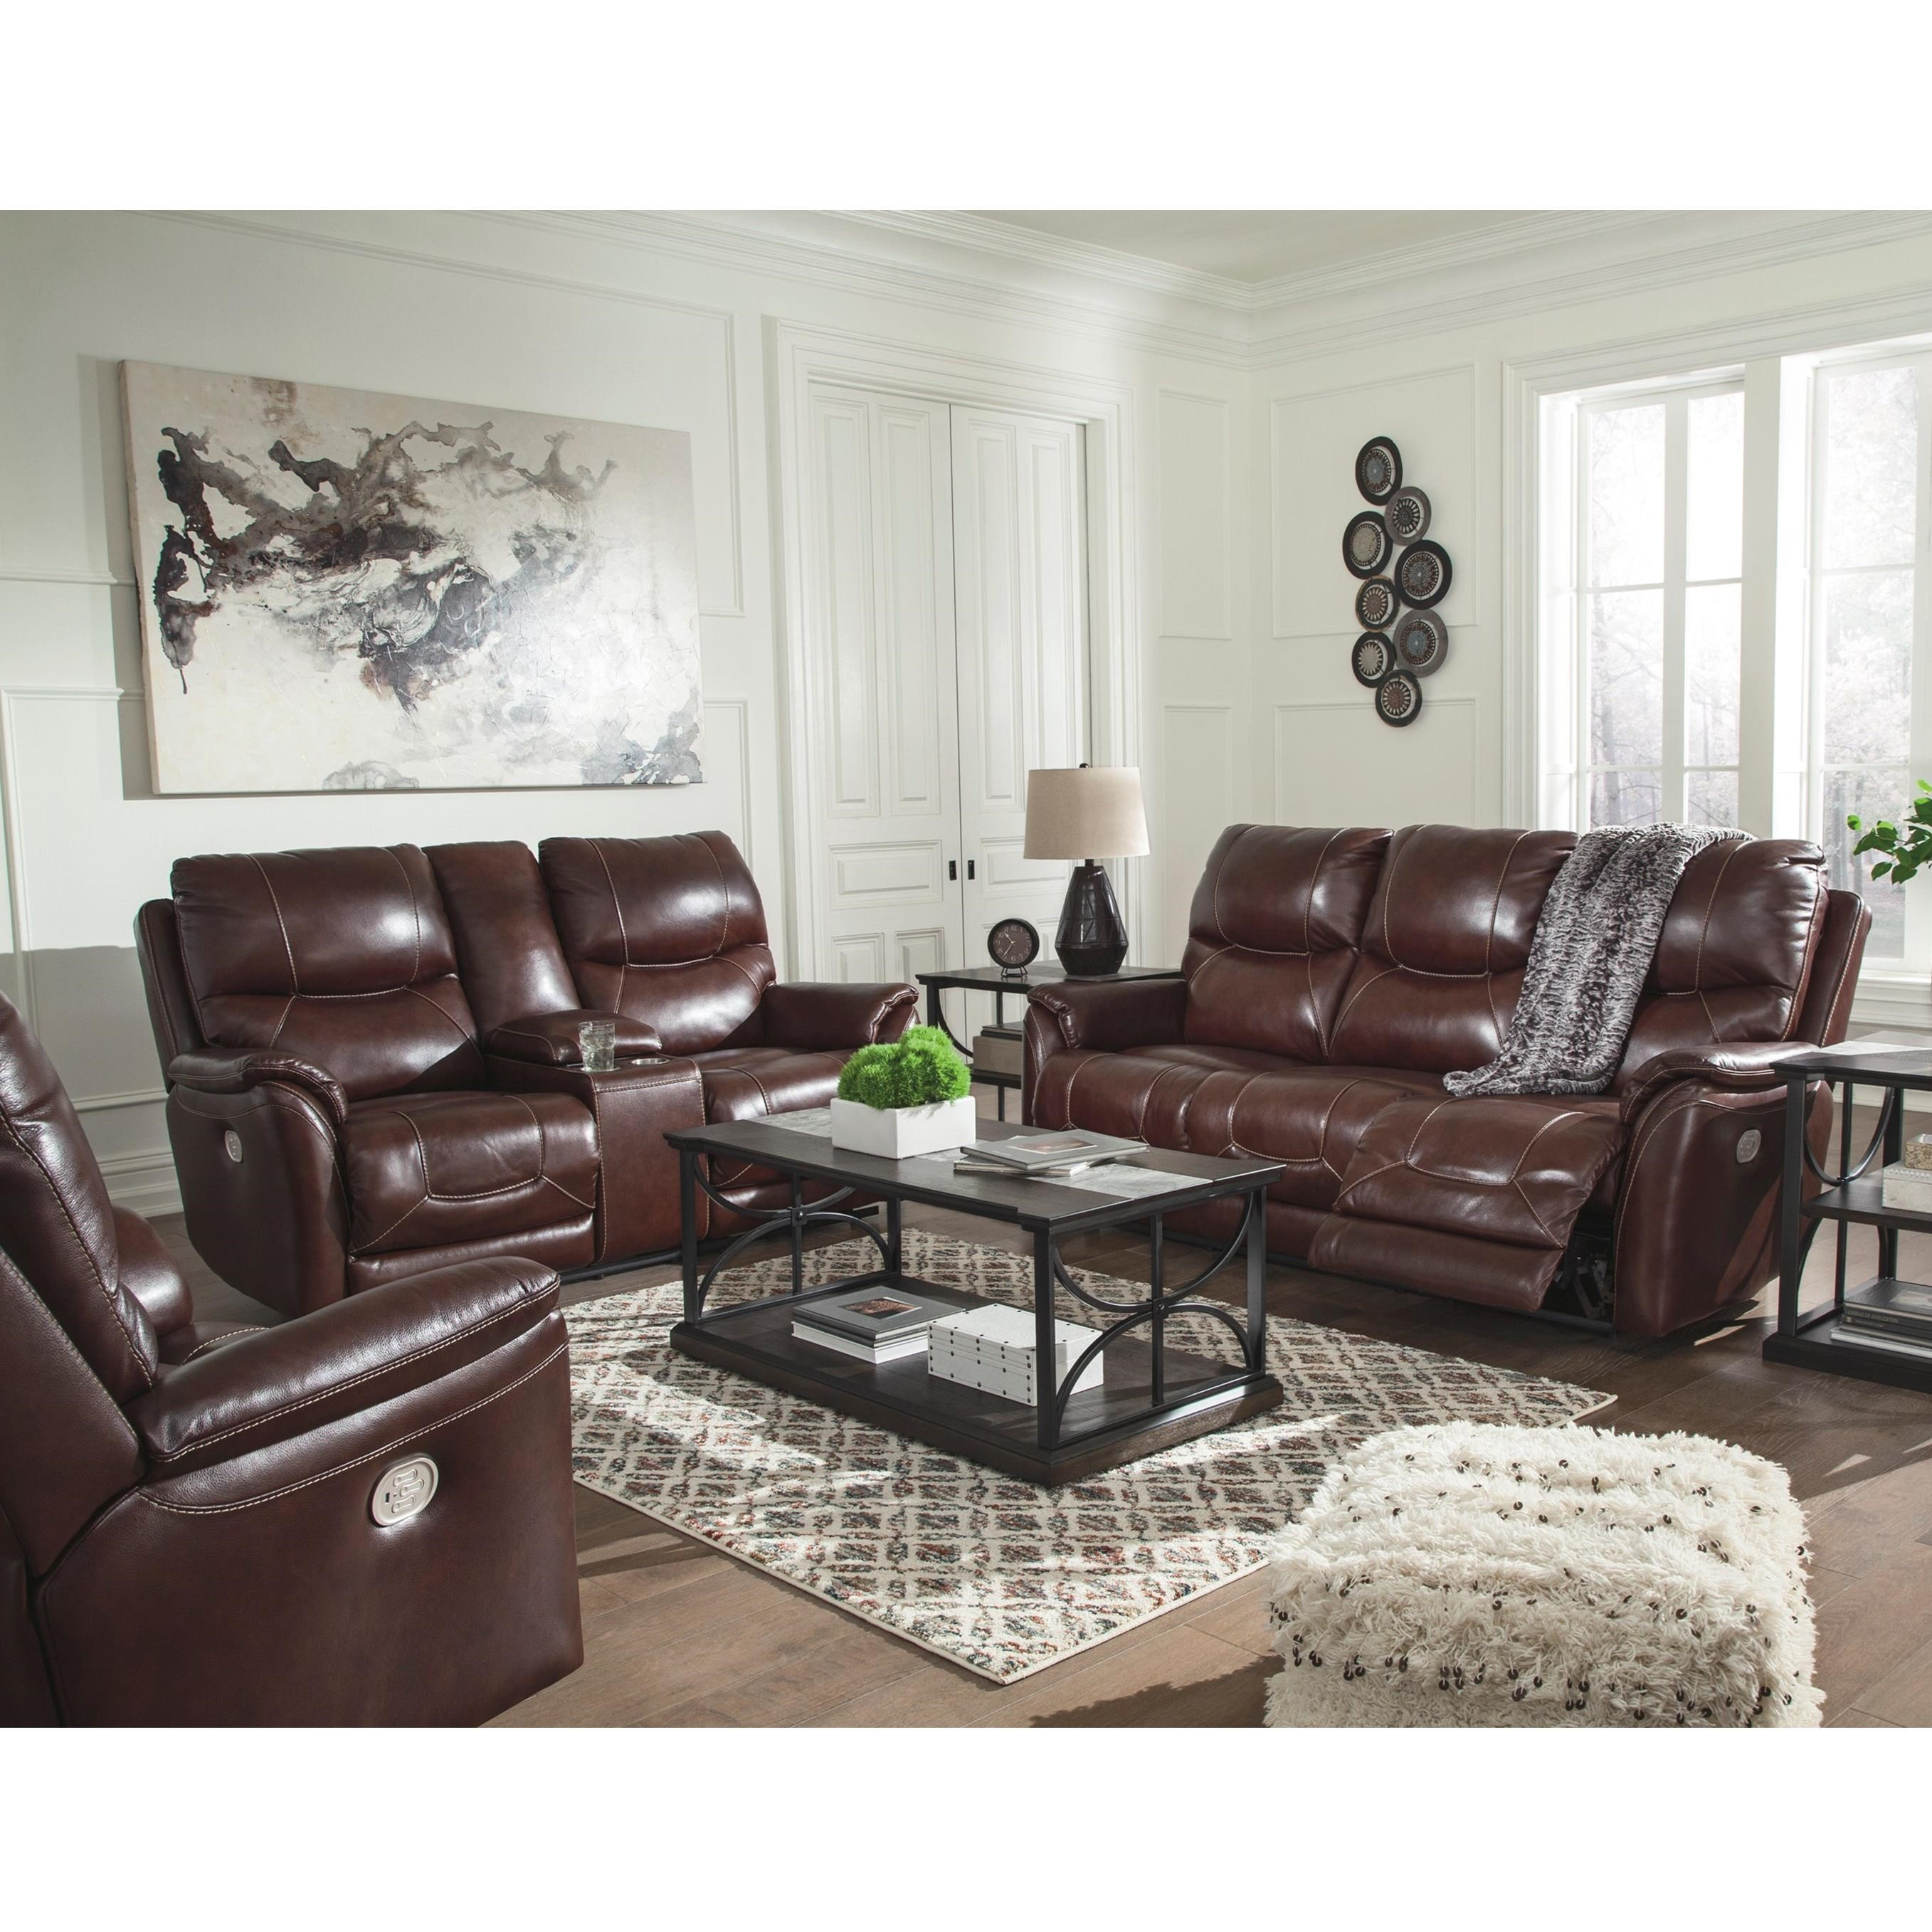 Dellington Power Reclining Living Room Group by Signature Design by Ashley at Northeast Factory Direct